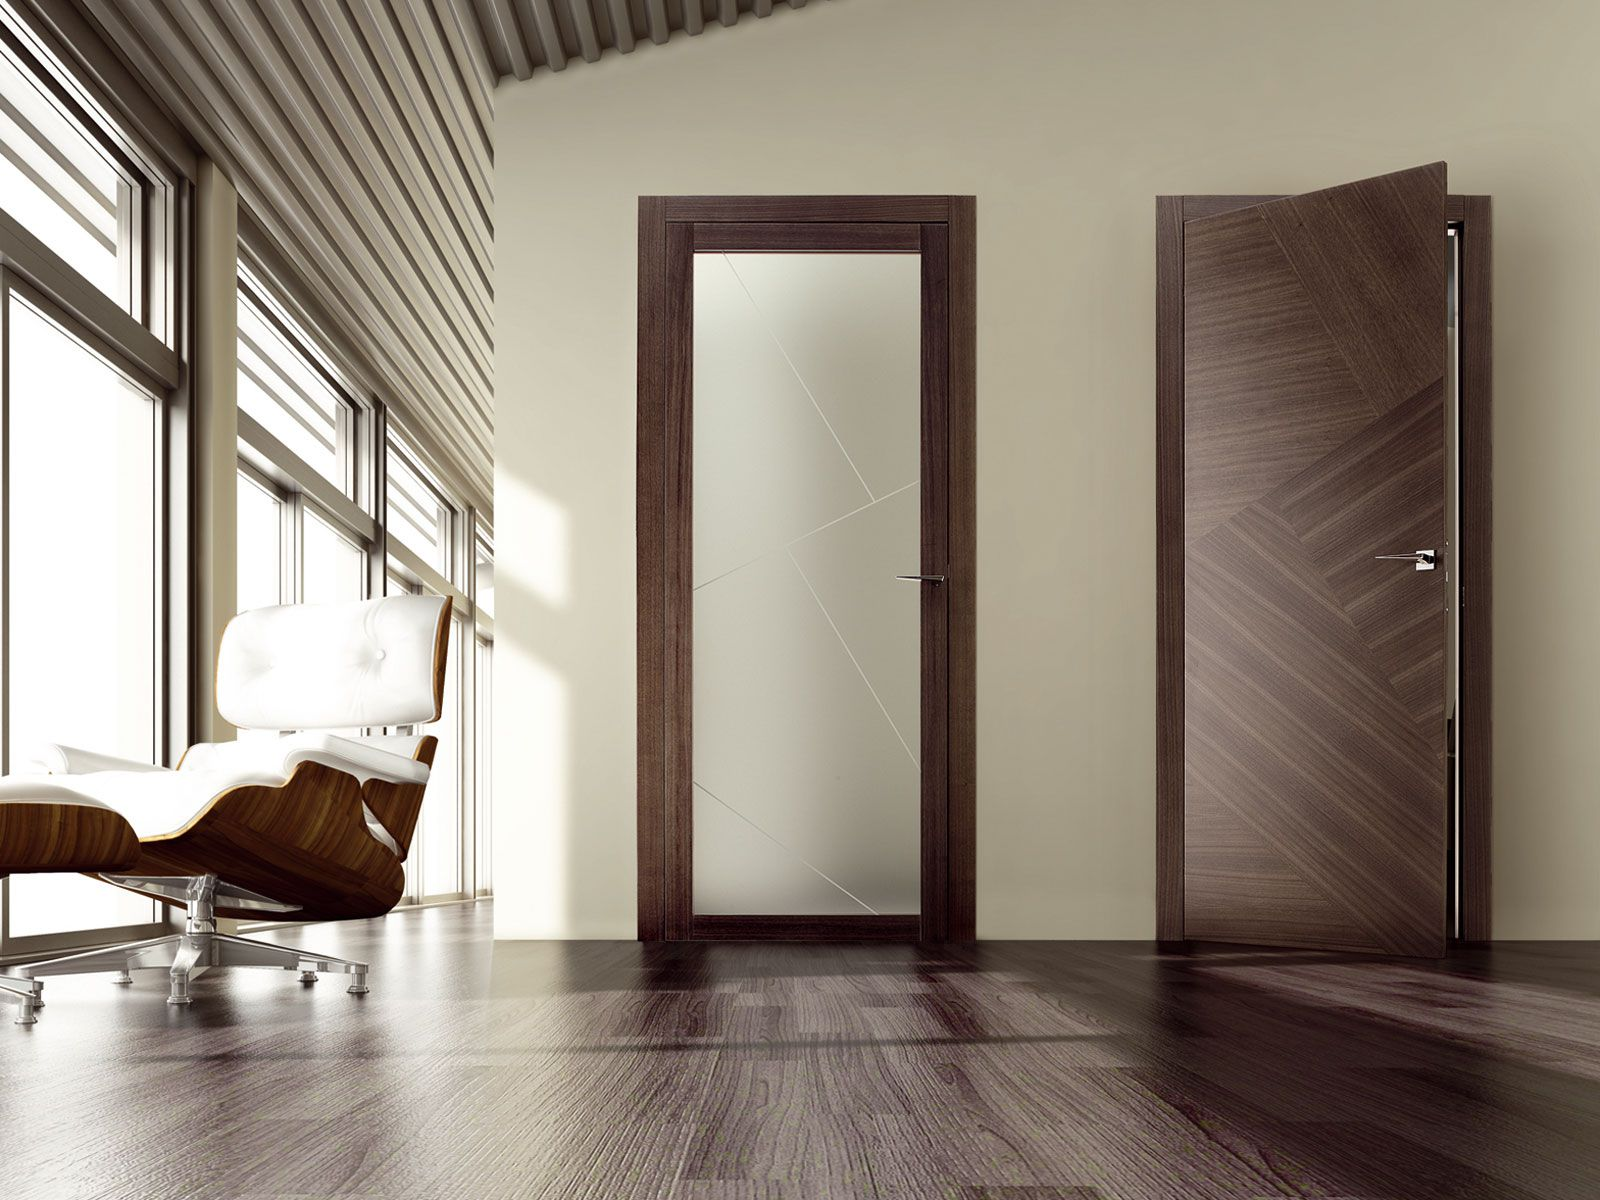 Veneered doors elements arcos flush oak veneered door is - Contemporary glass doors interior ...